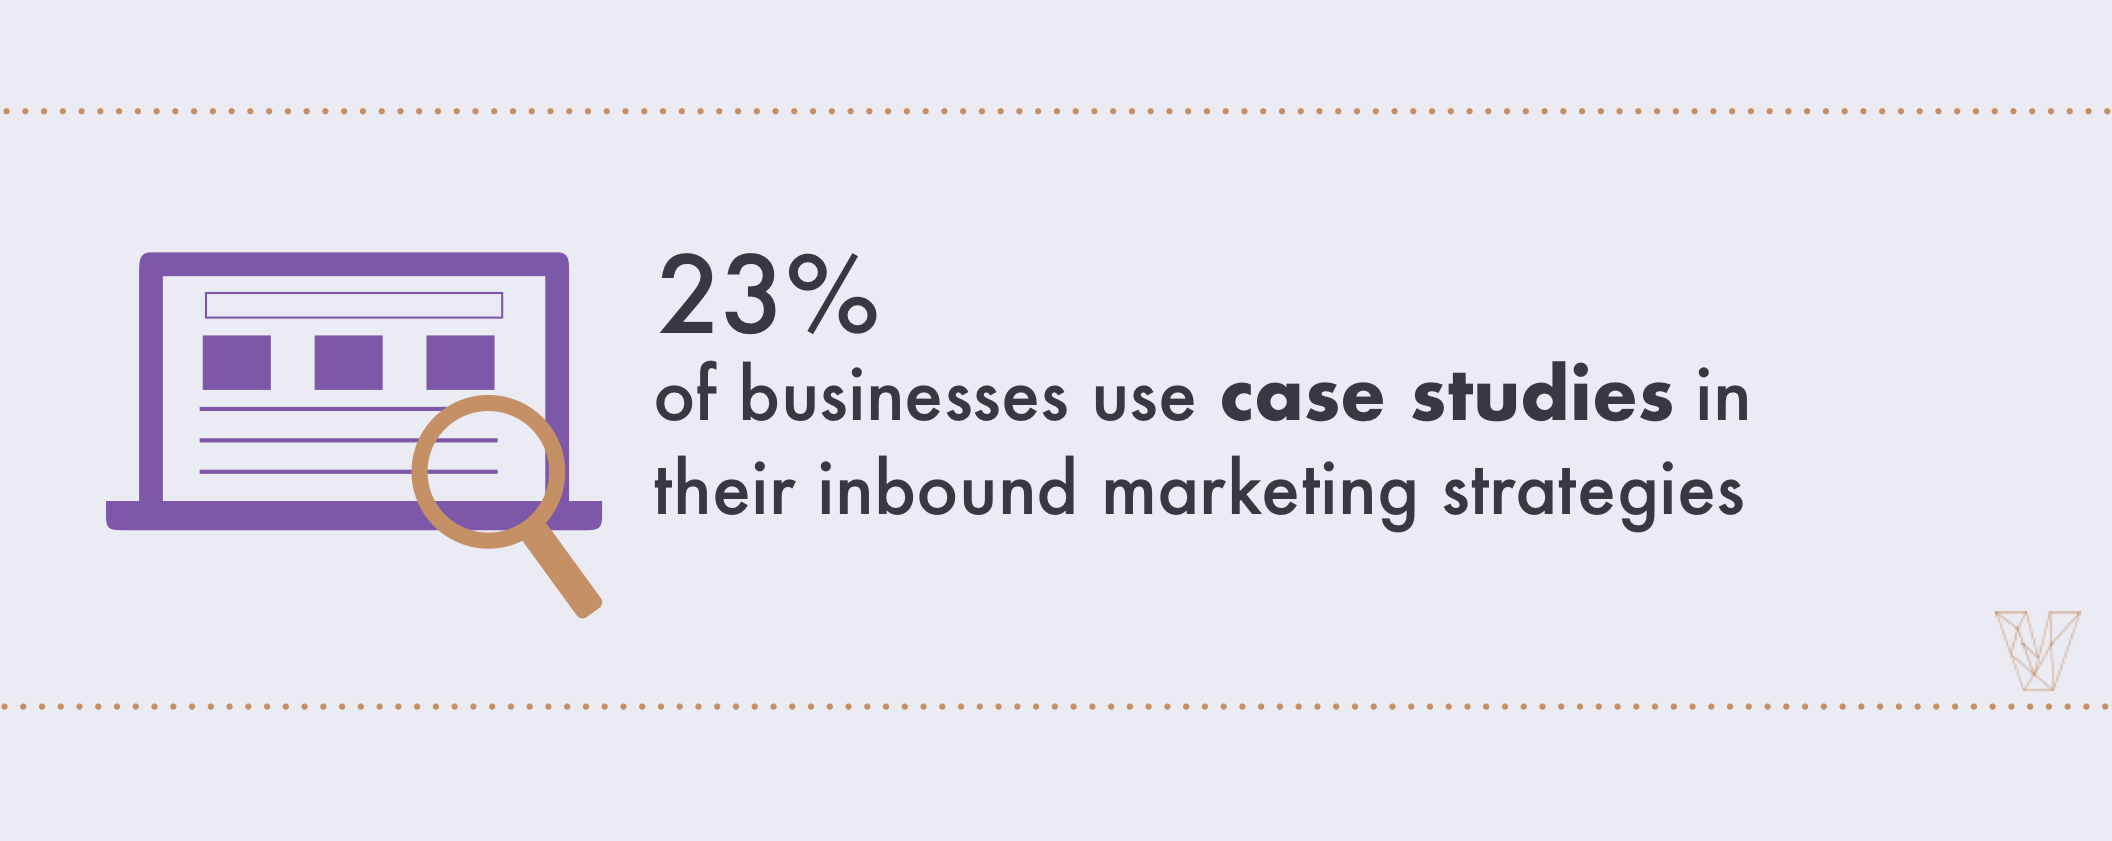 23% of businesses use case studies in their inbound marketing strategies